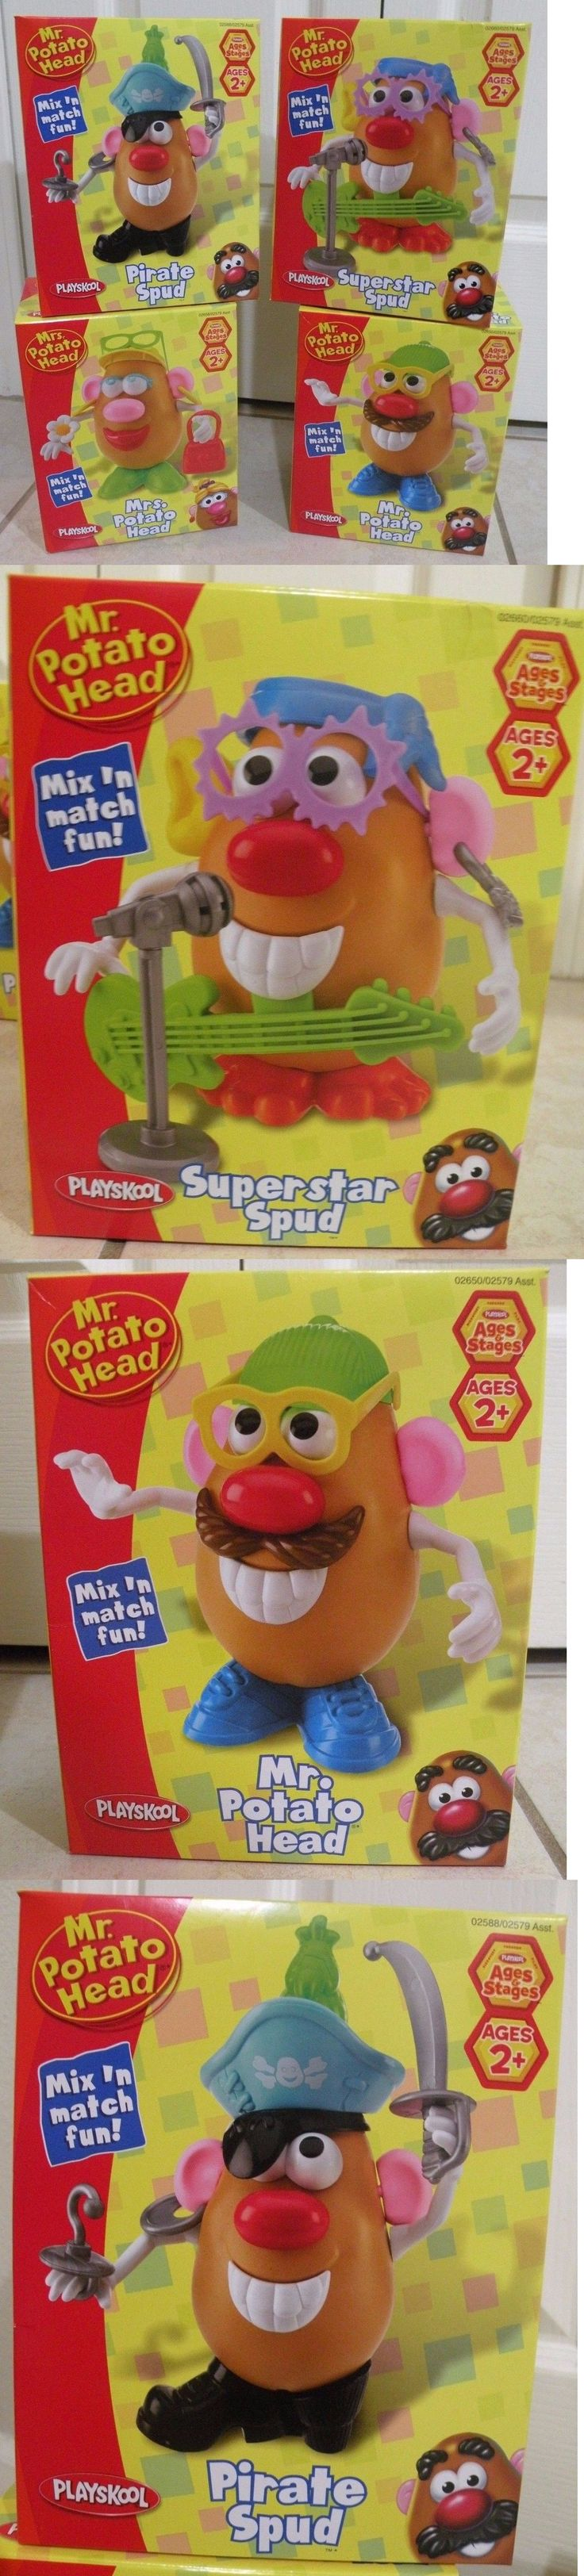 Playskool 2576: New - Lot Of 4 - Playskool Mr Potato Head -> BUY IT NOW ONLY: $32.98 on eBay!